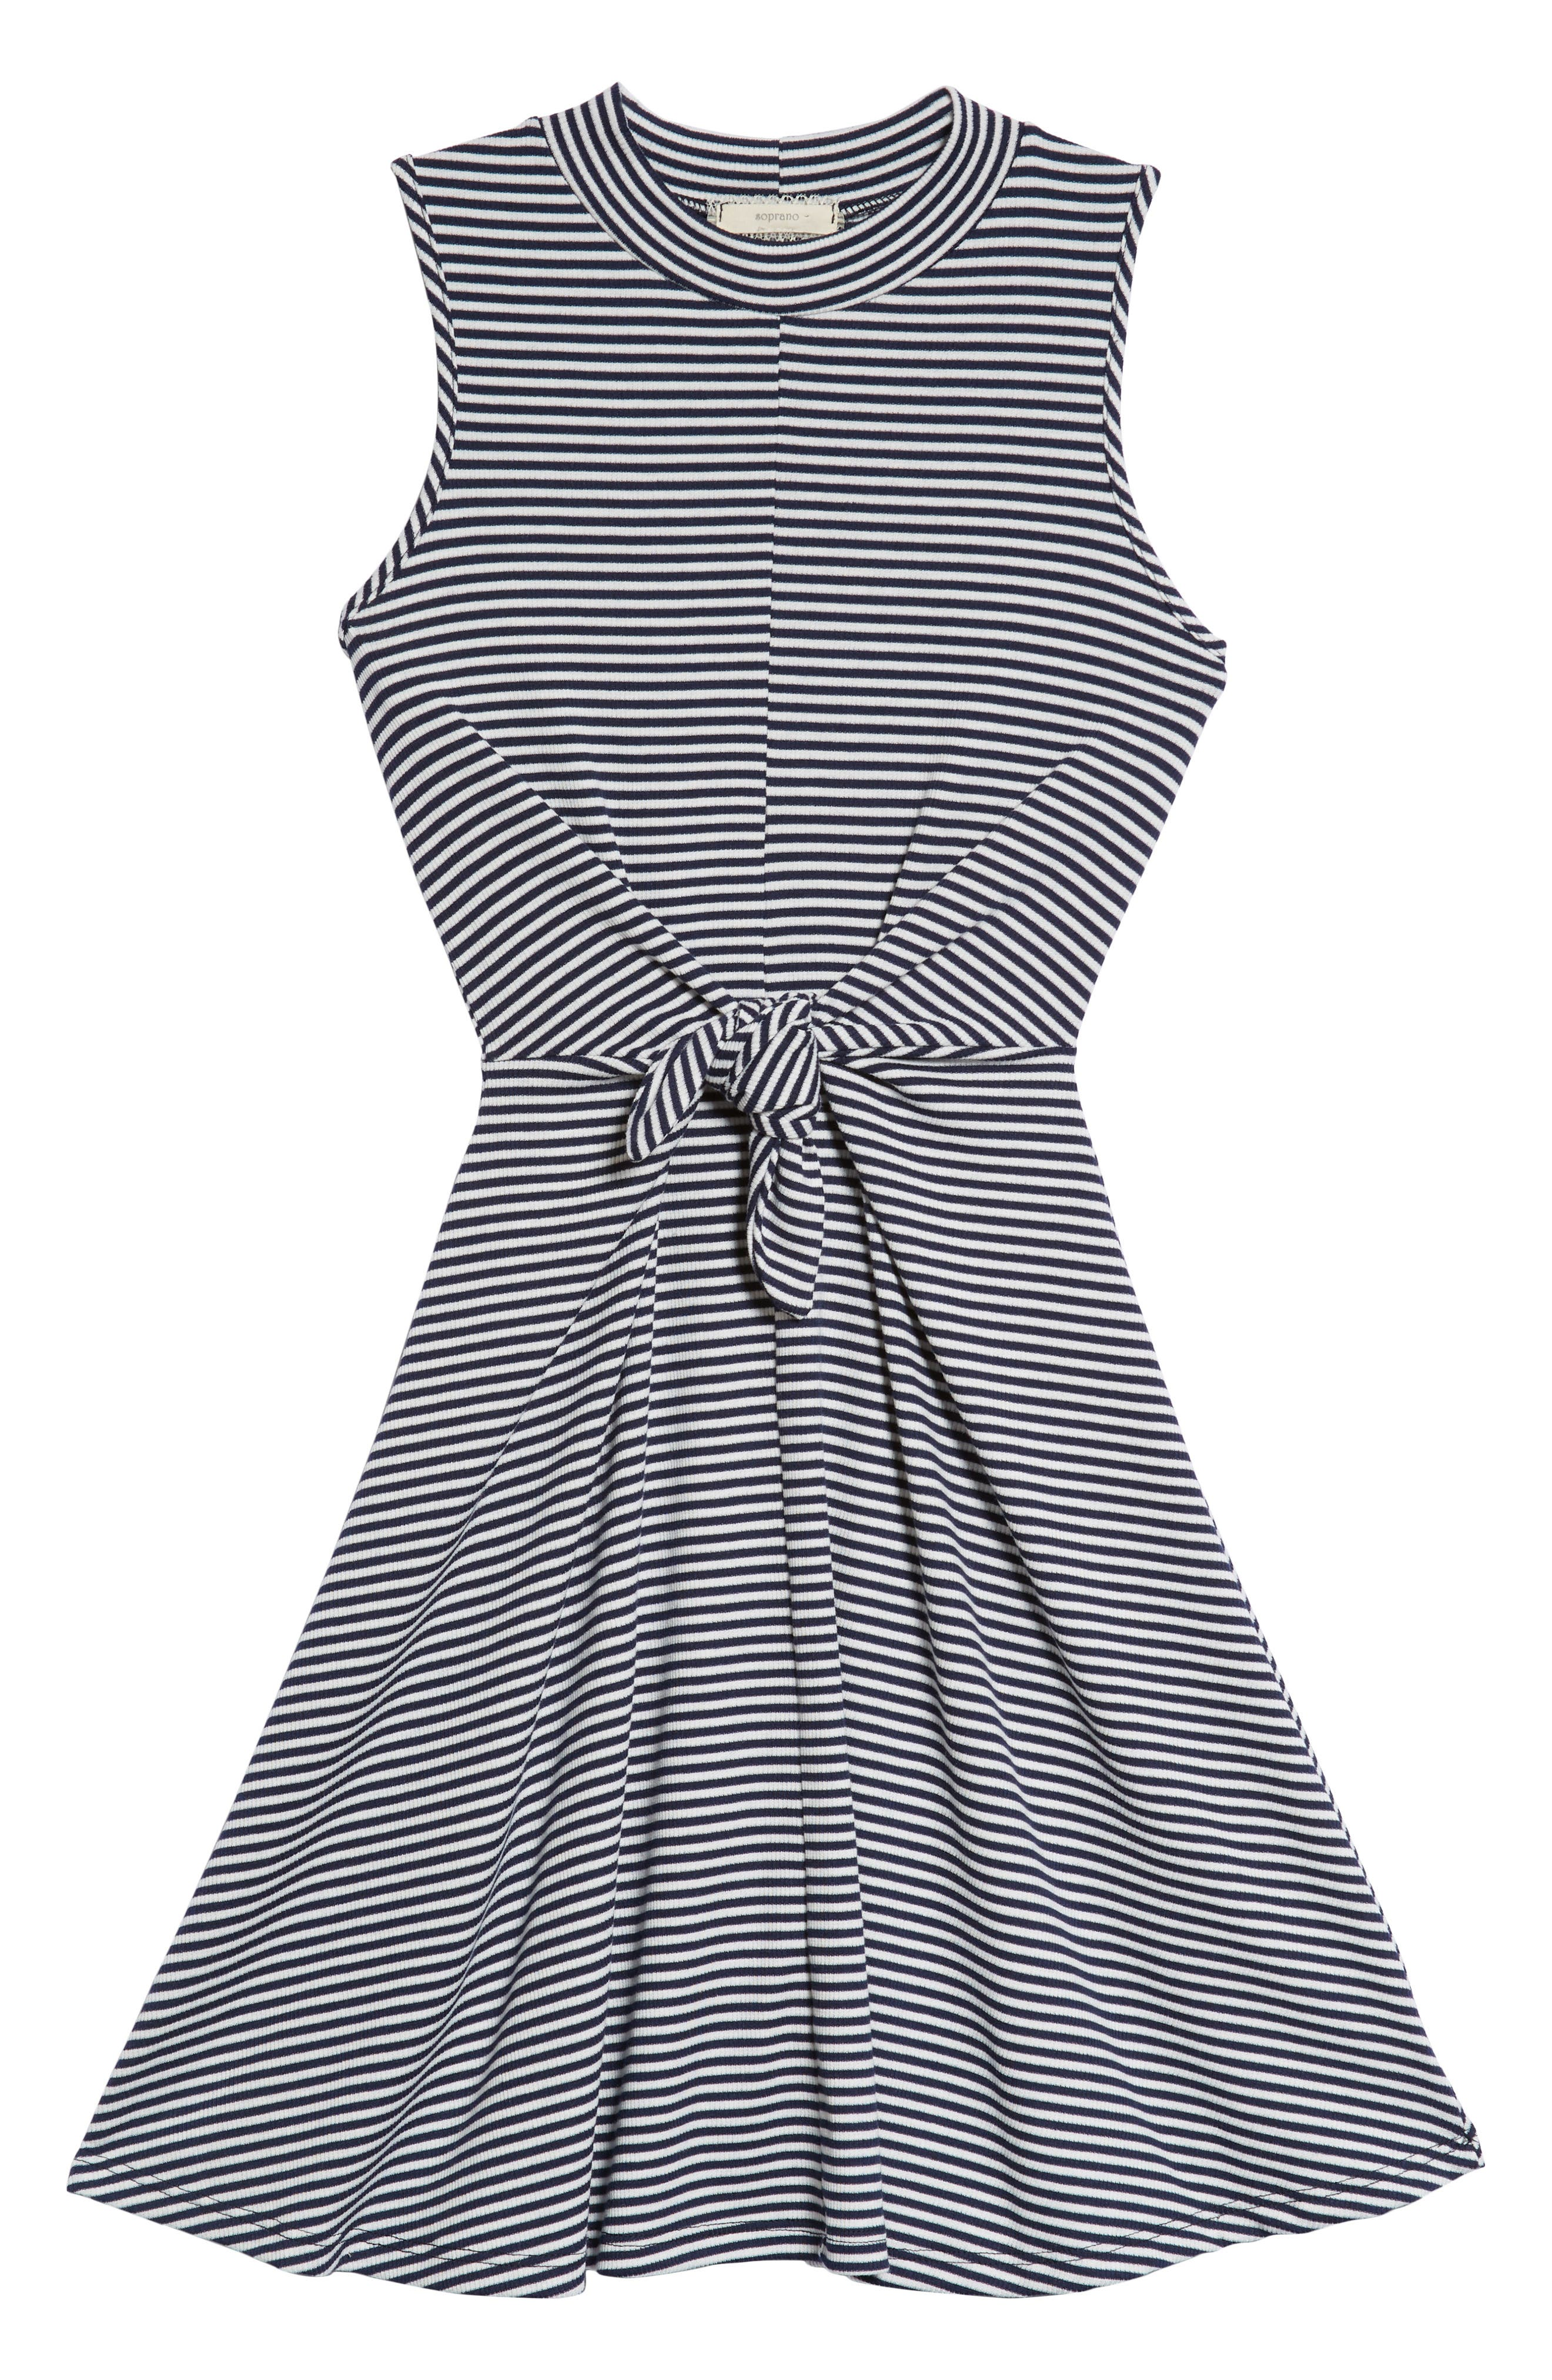 Tie Front Skater Dress,                         Main,                         color, Navy/ White